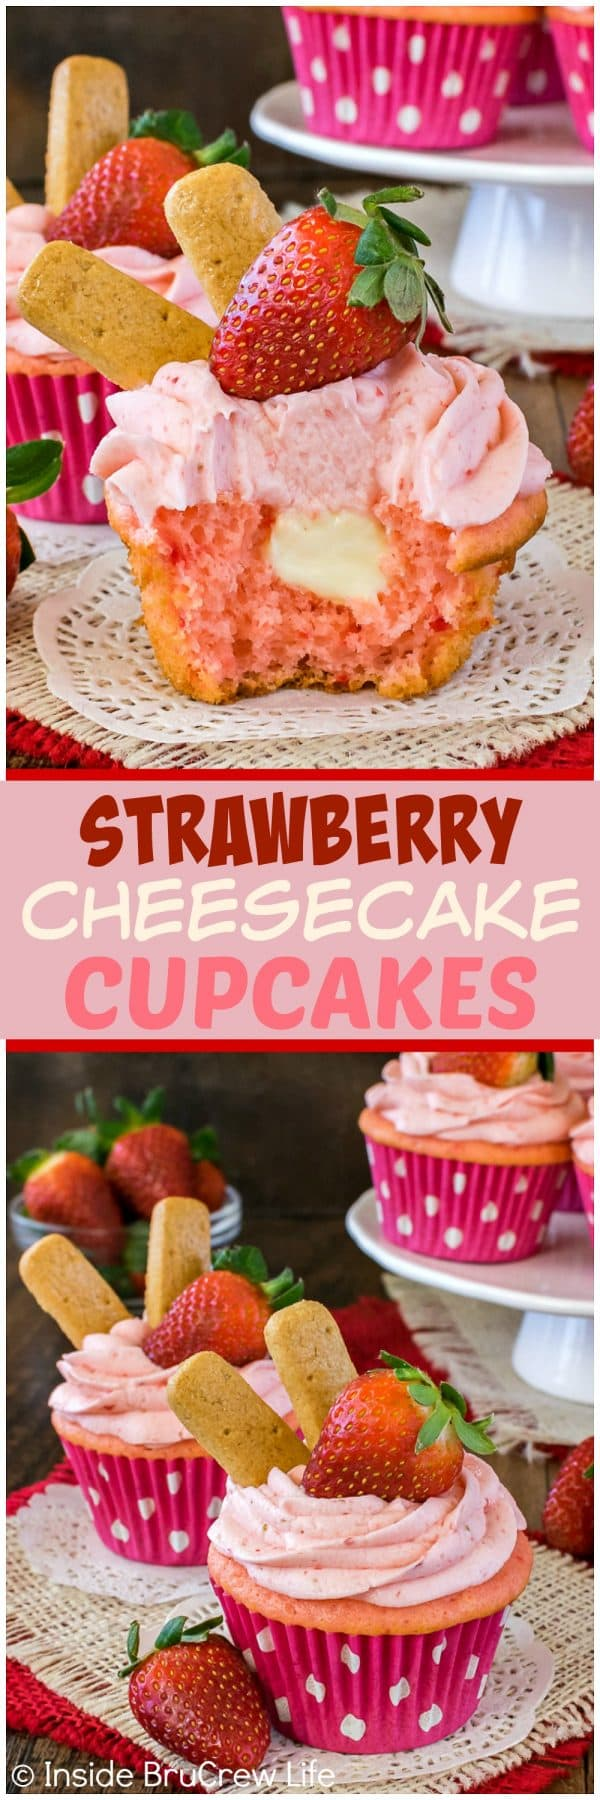 Two pictures of strawberry cheesecake cupcakes collaged together with a pink text box